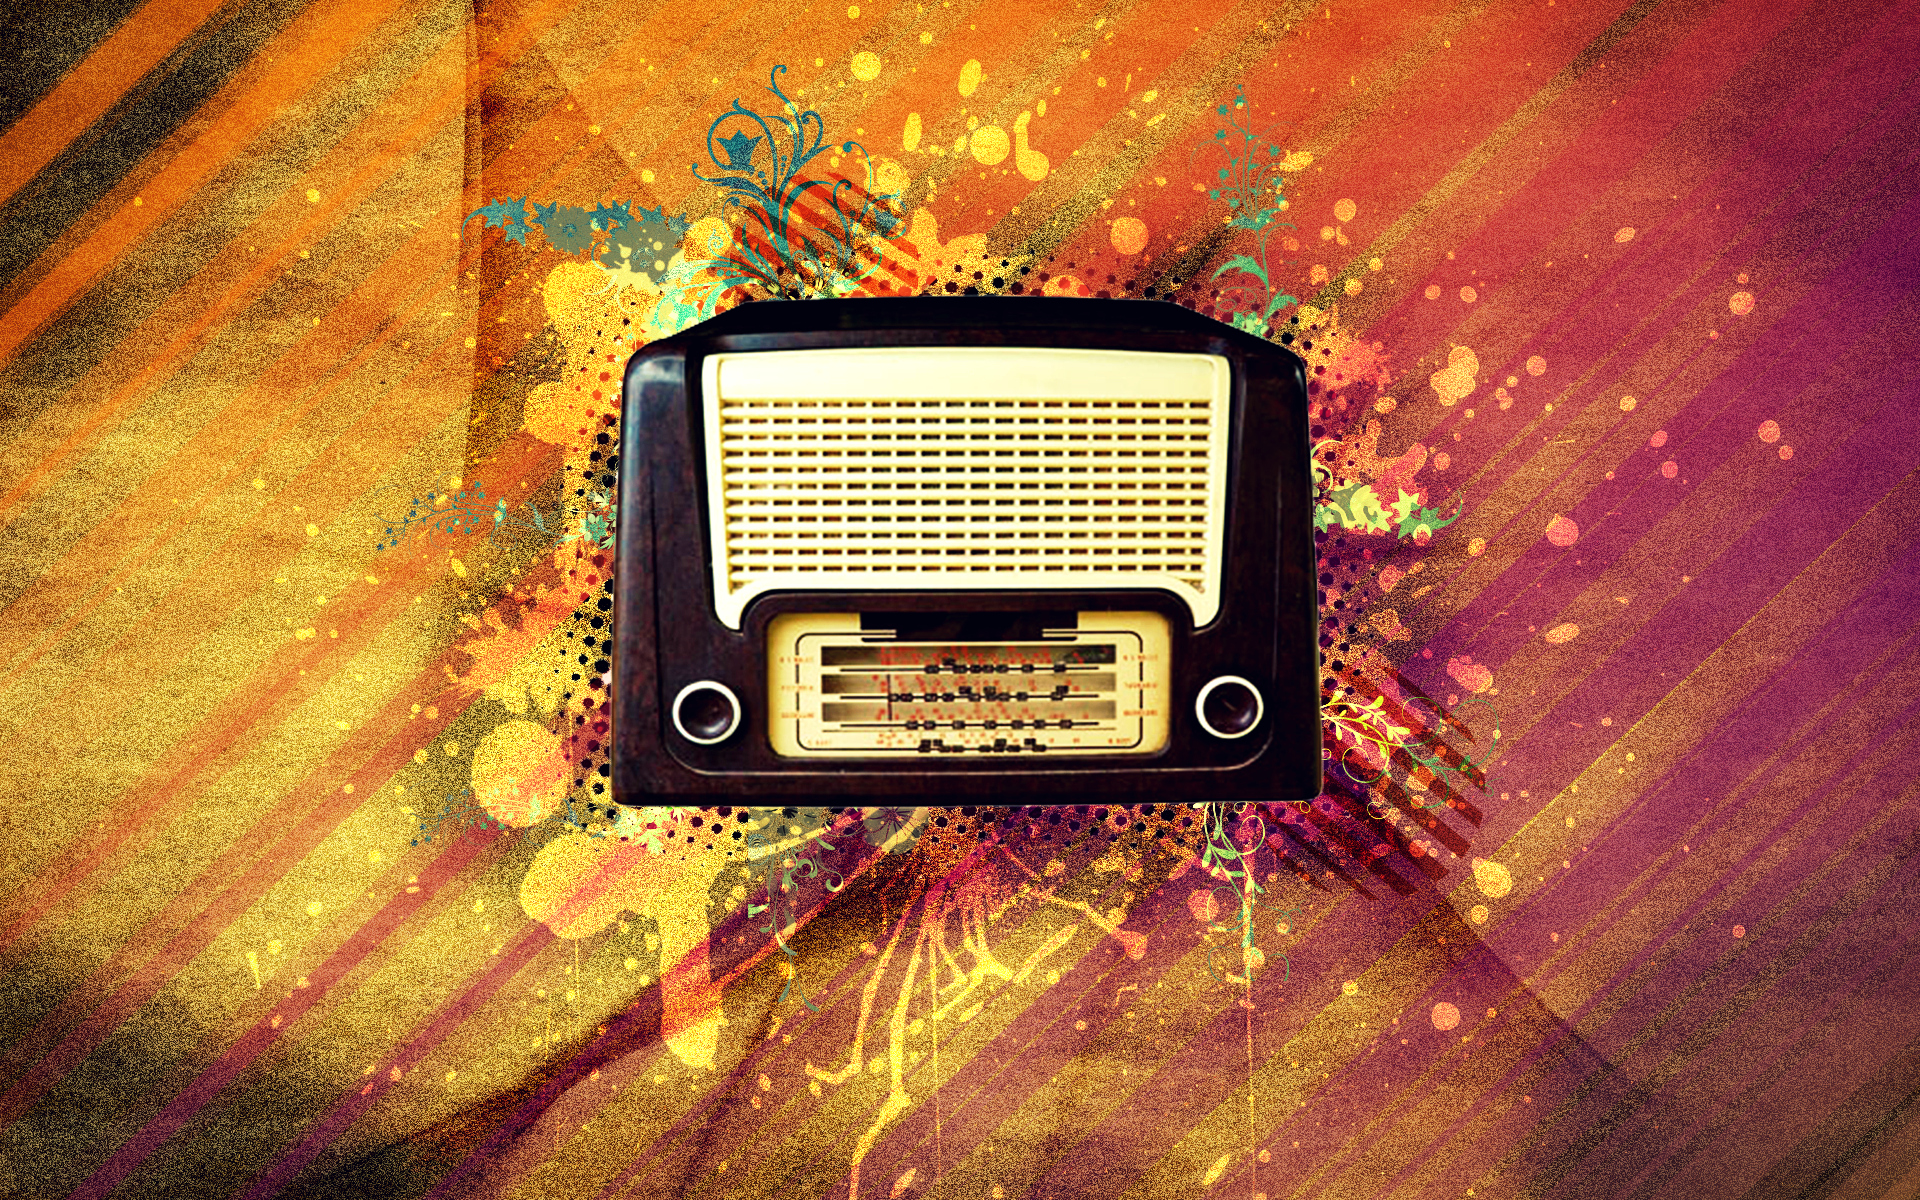 Radio Images | Resolution: 1920x1200 px, Deena Shultis